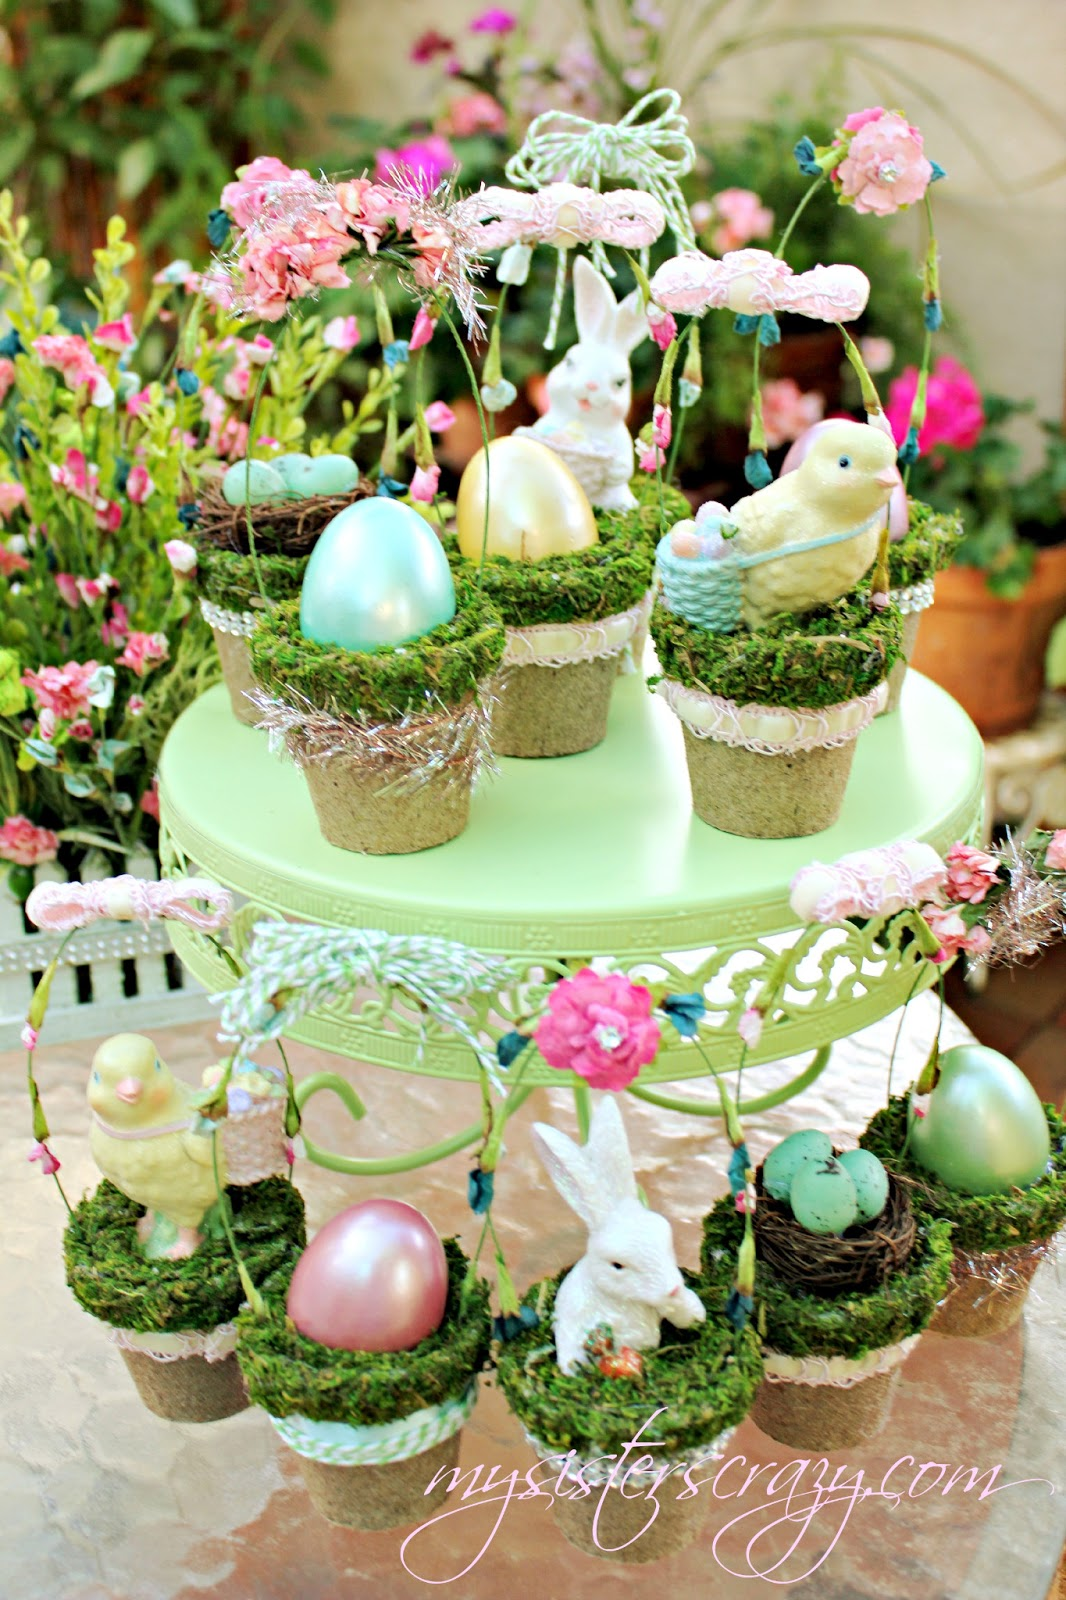 Cheap Spring Decorations: My Sister's Crazy!: DECORATING WITH SPRING AND EASTER CRAFTS